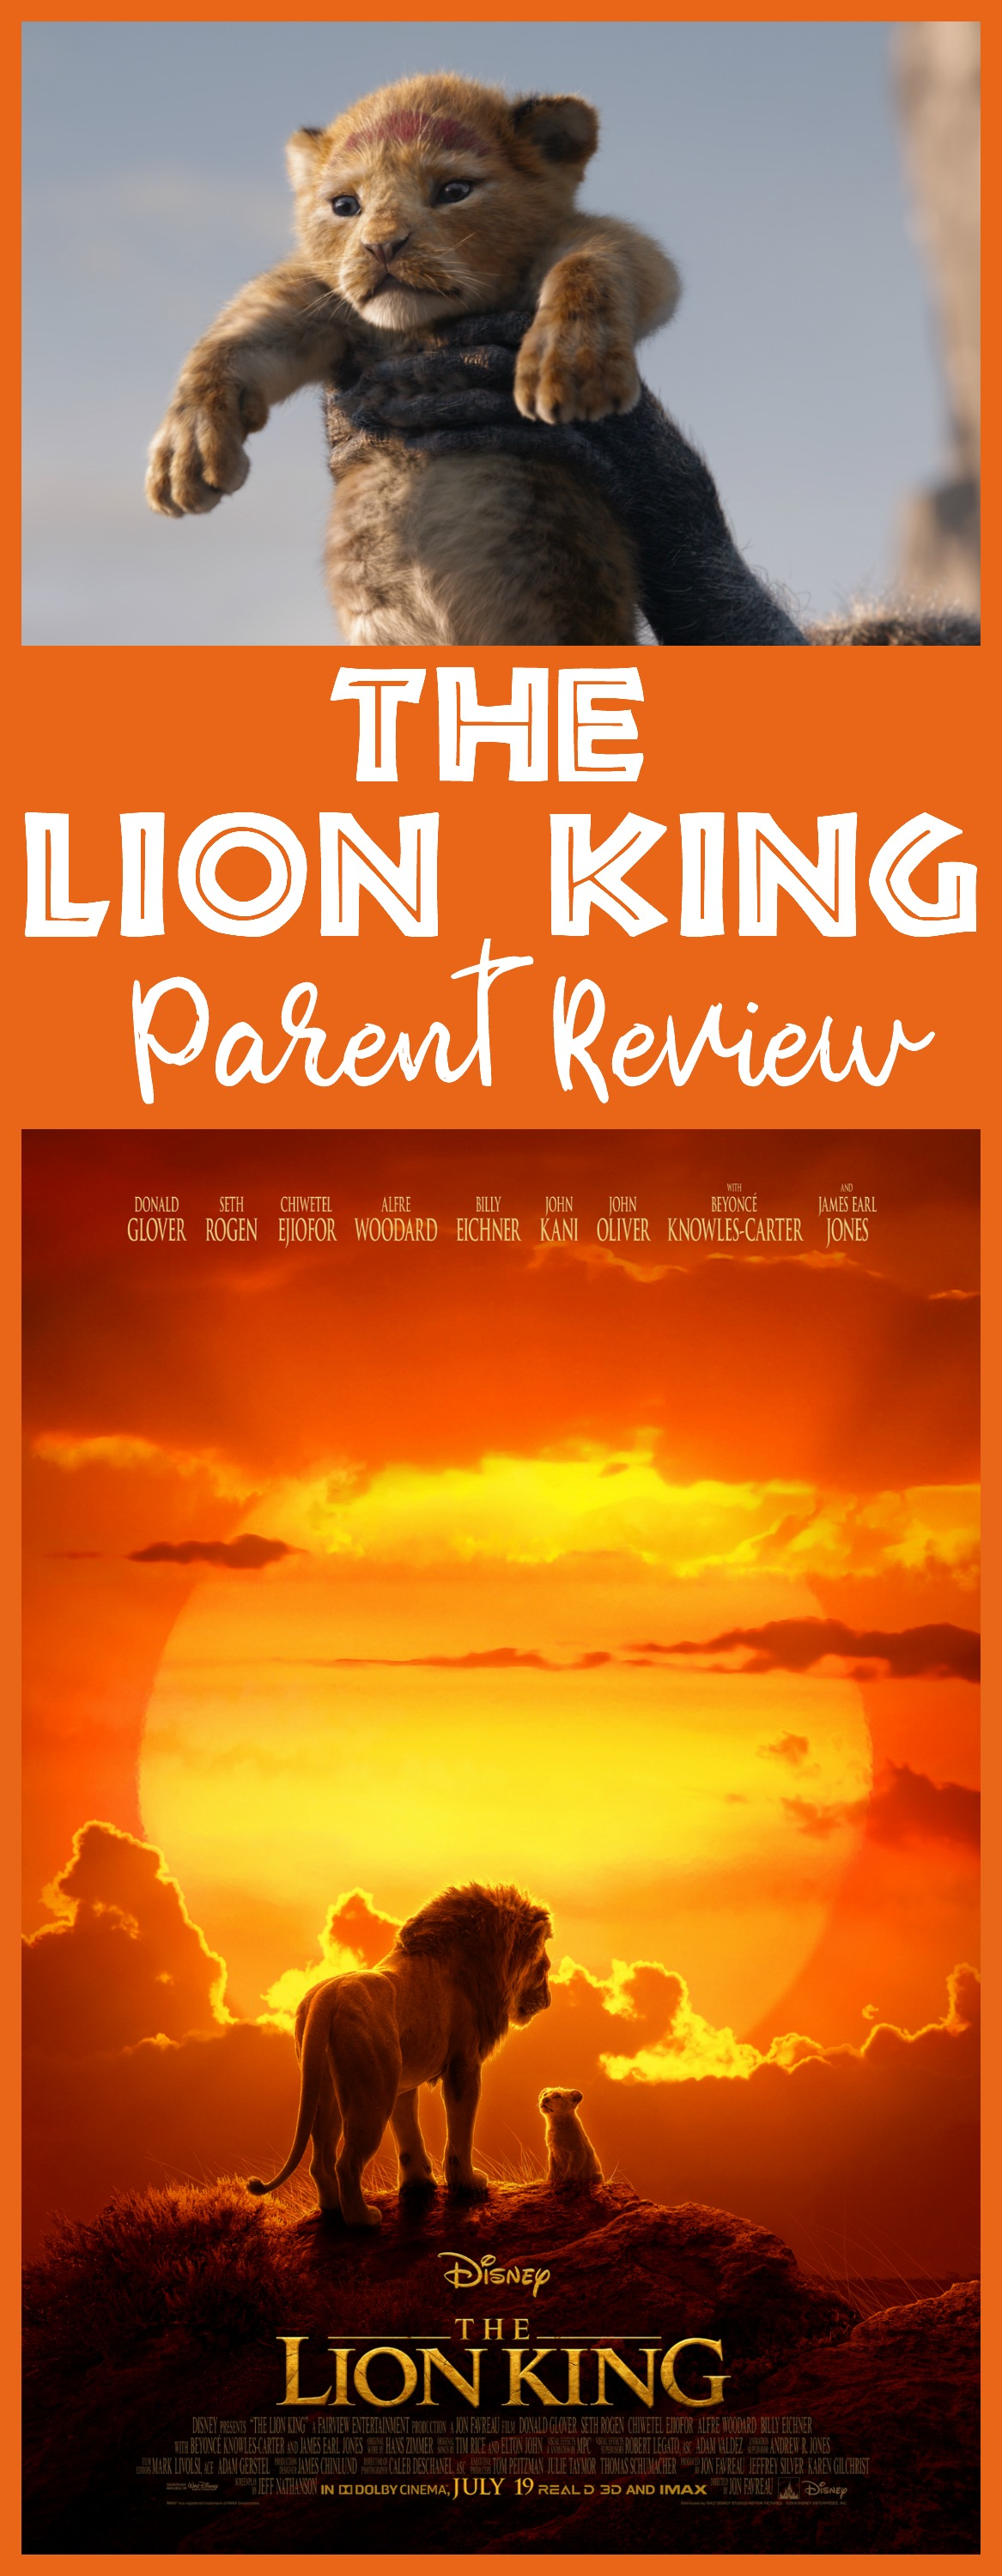 lion king parent review, the lion king movie review, is the lion king kid-friendly, lion king safe for kids, should kids see the lion king, #TheLionKing #moviereview #Disneymovies